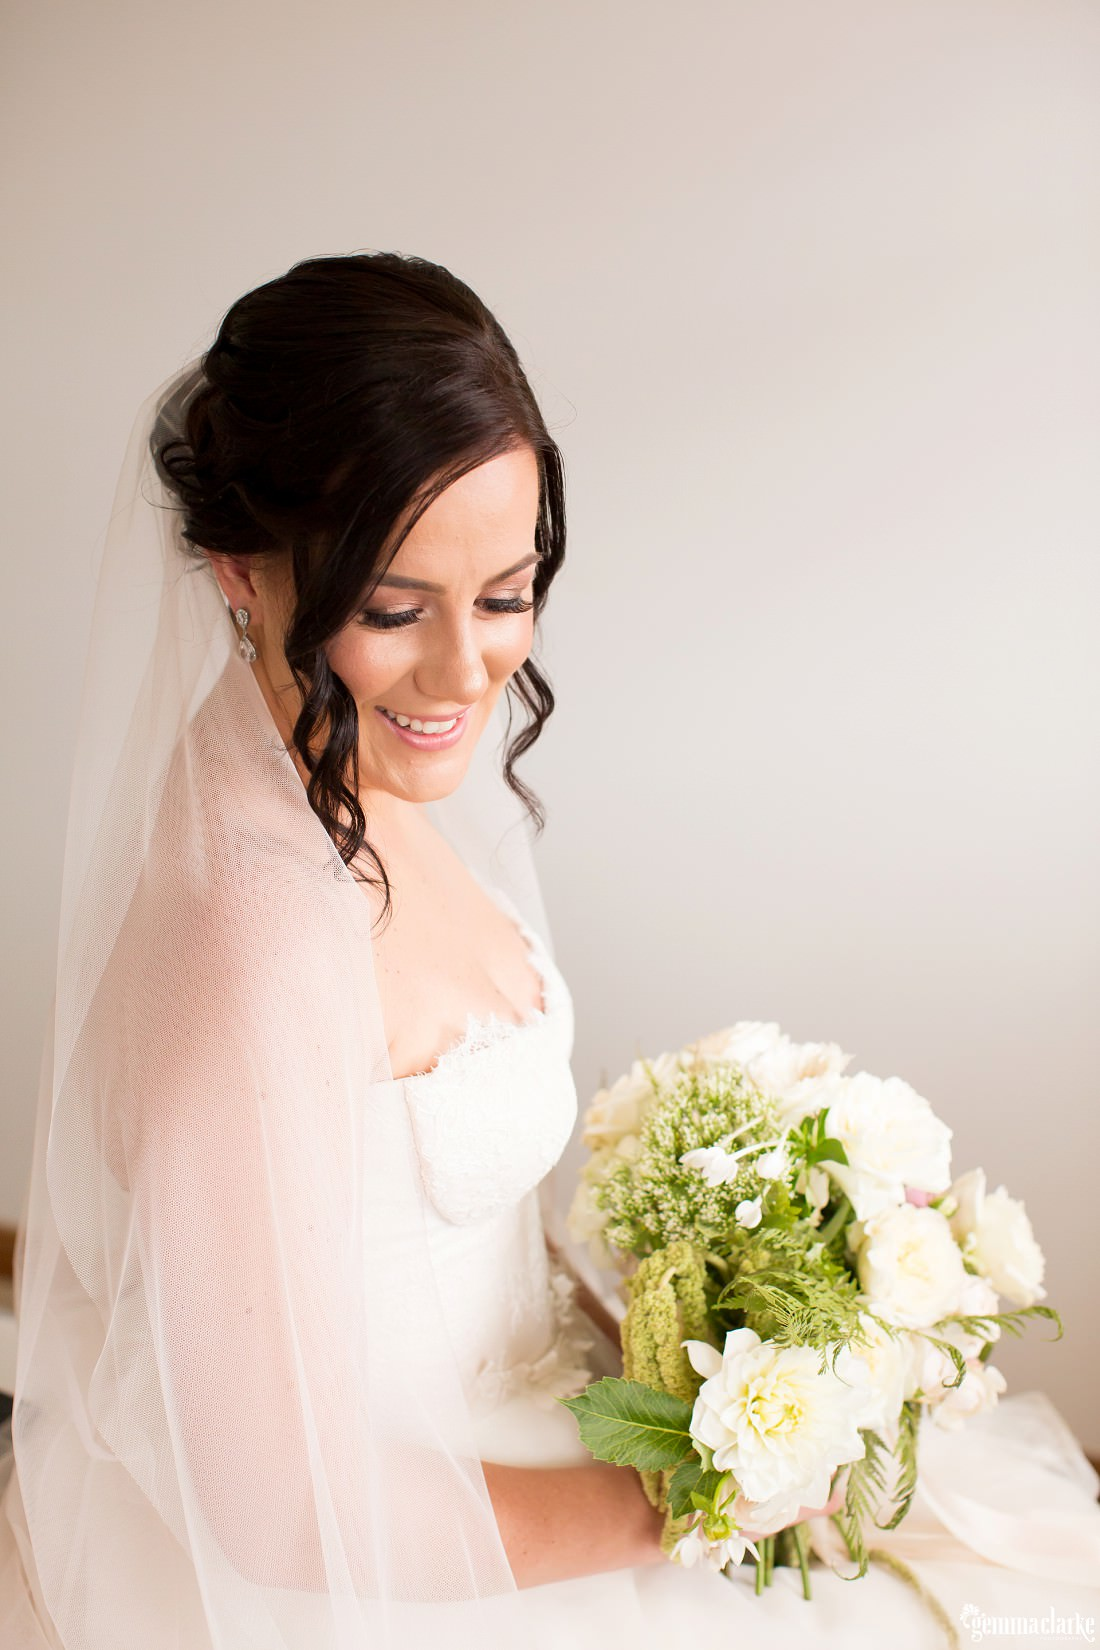 A smiling bride sitting and holding a bouquet of lightly coloured flowers